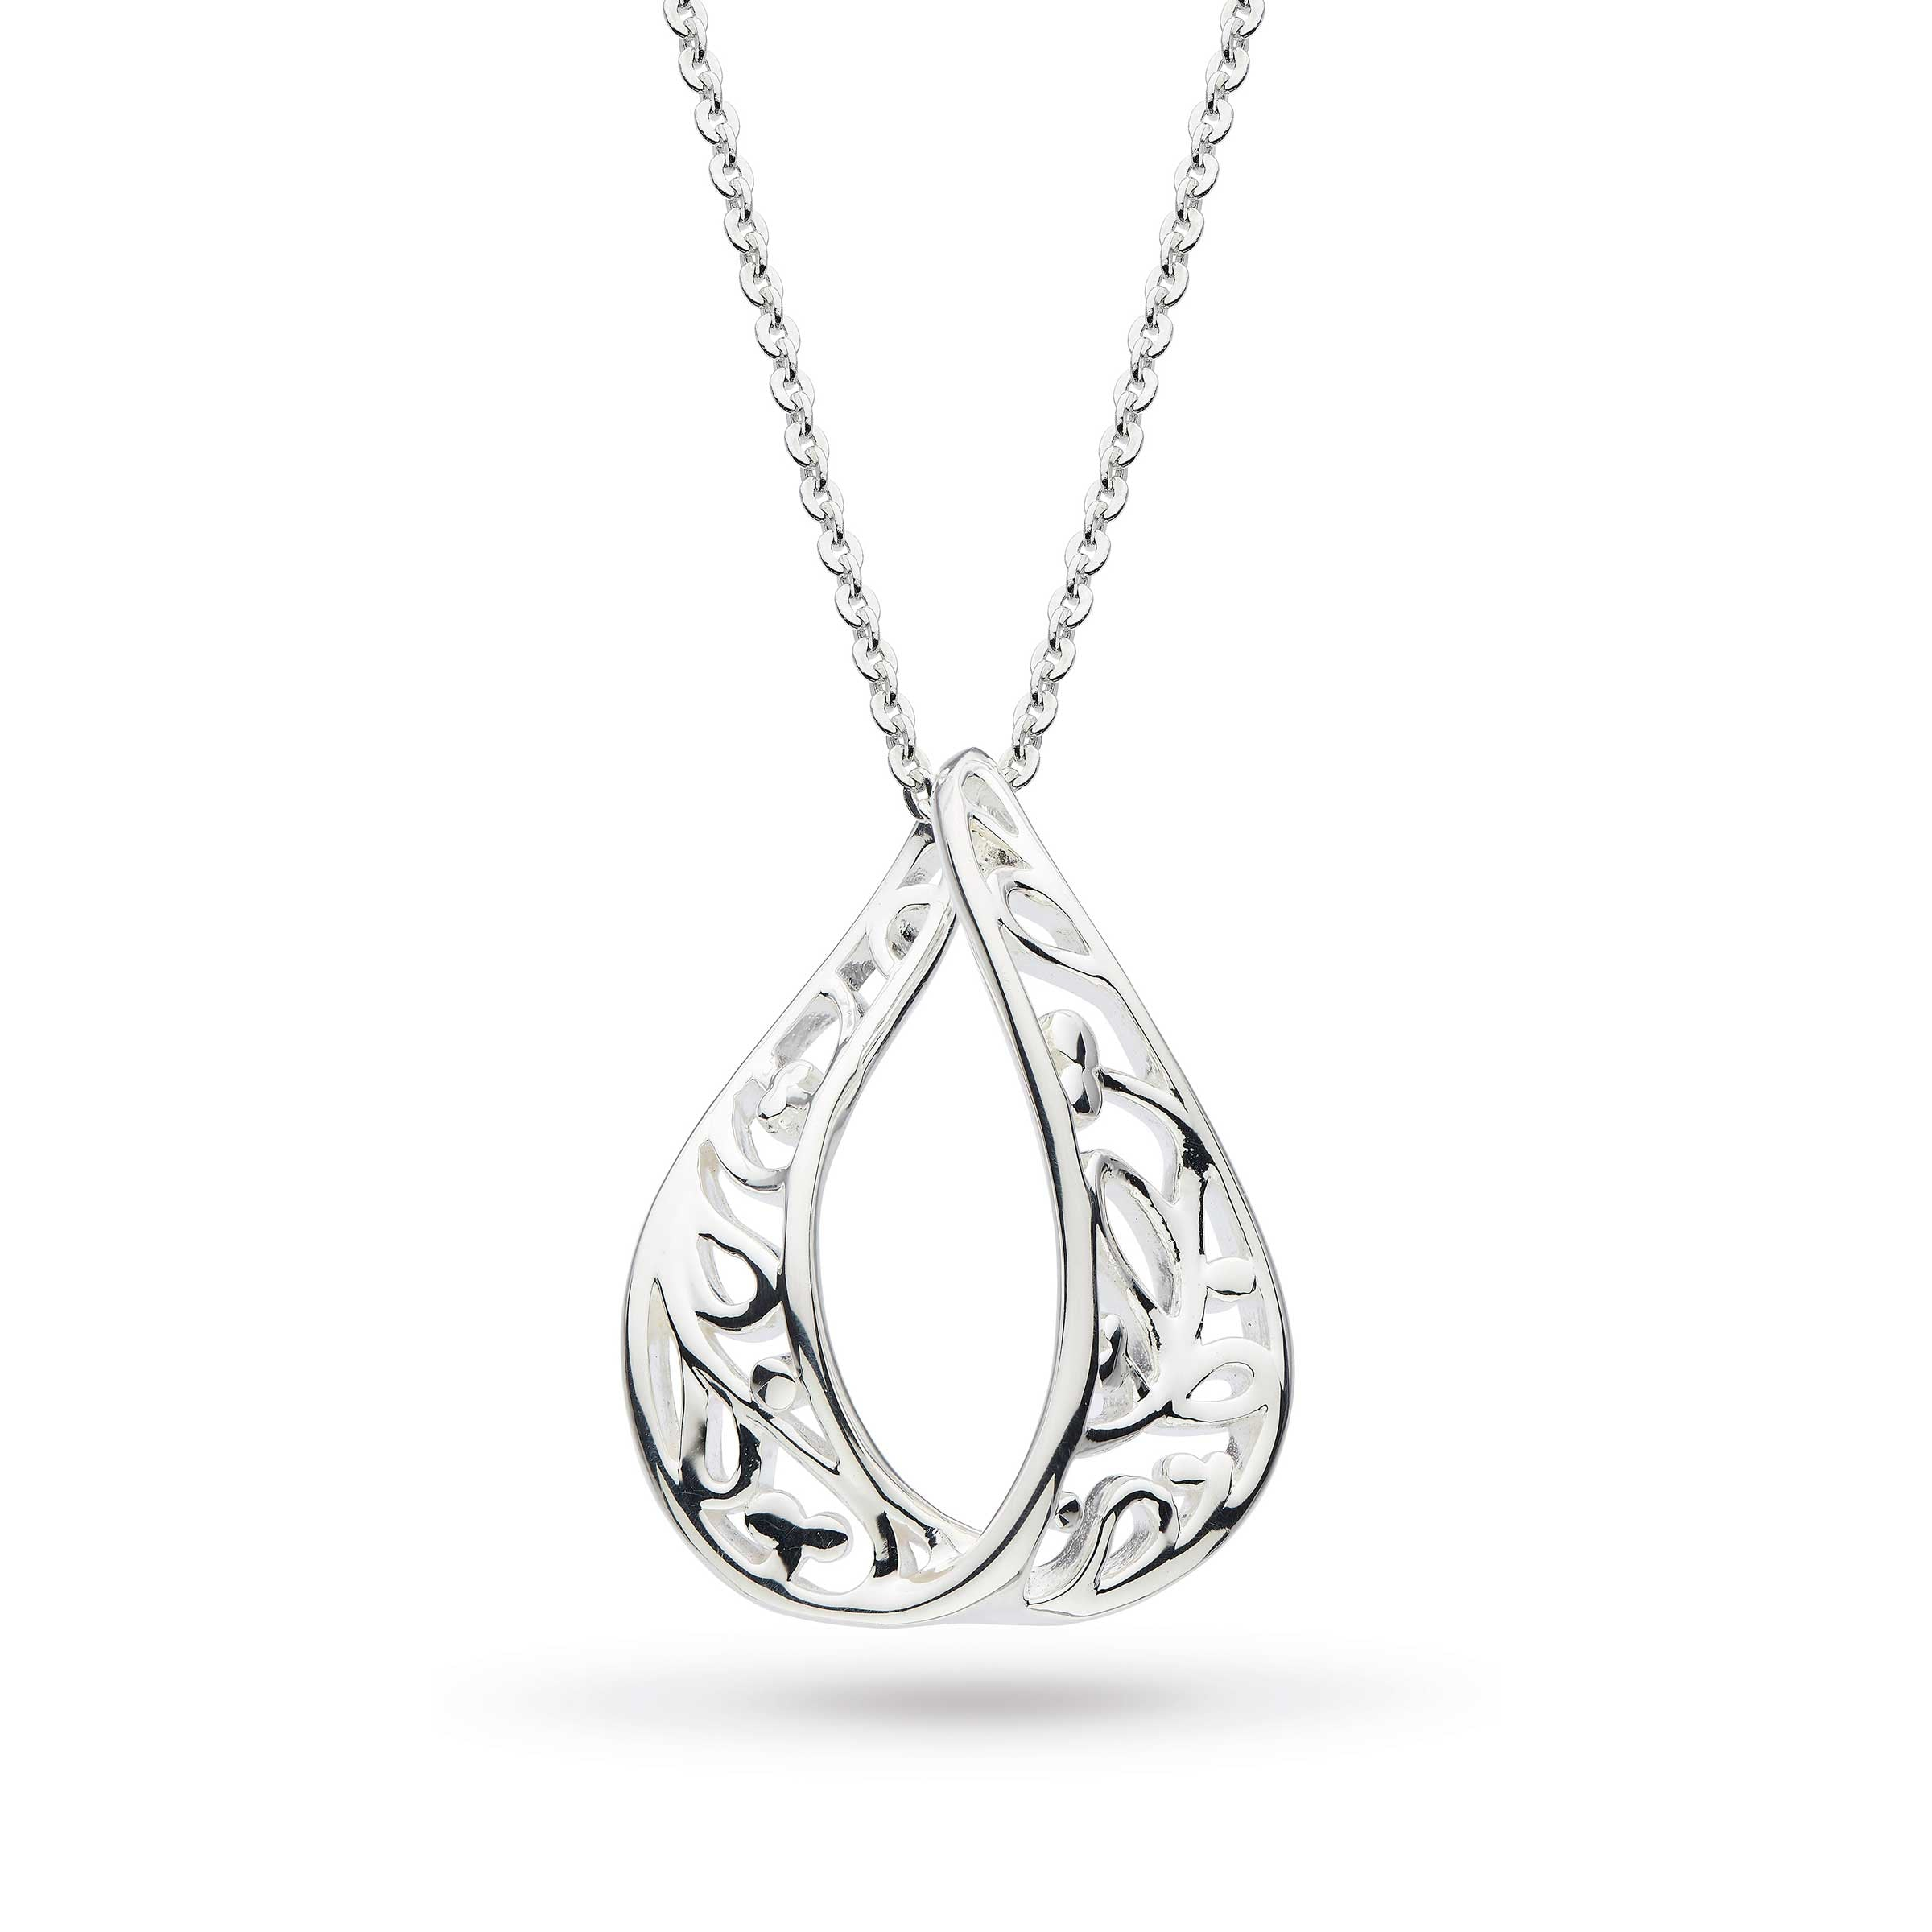 Blossom Flourish Teardrop Necklace, Sterling Silver